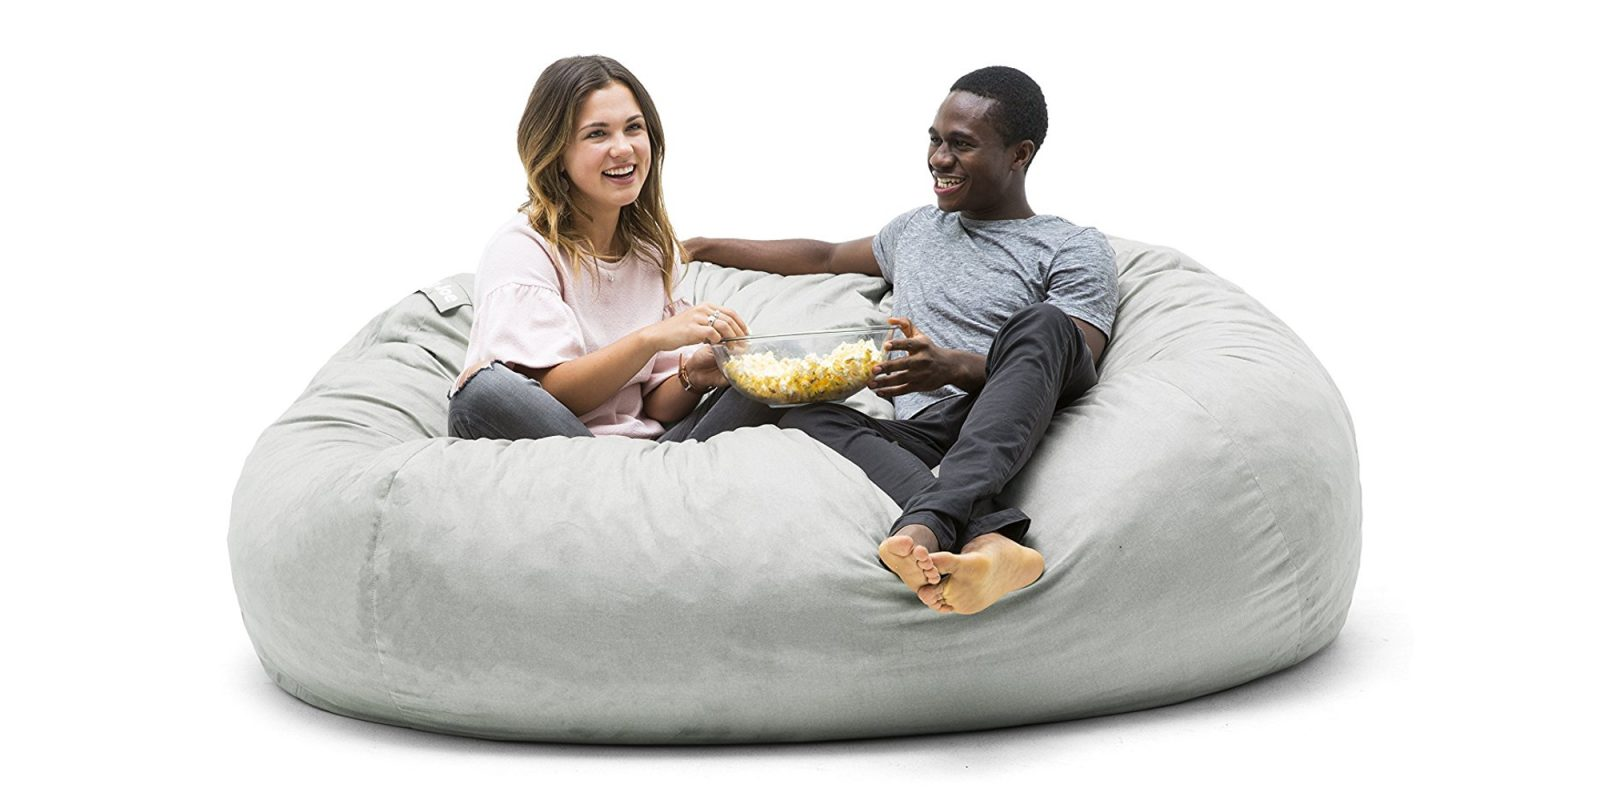 Relax In This Giant Xxl Bean Bag Chair At An Amazon All